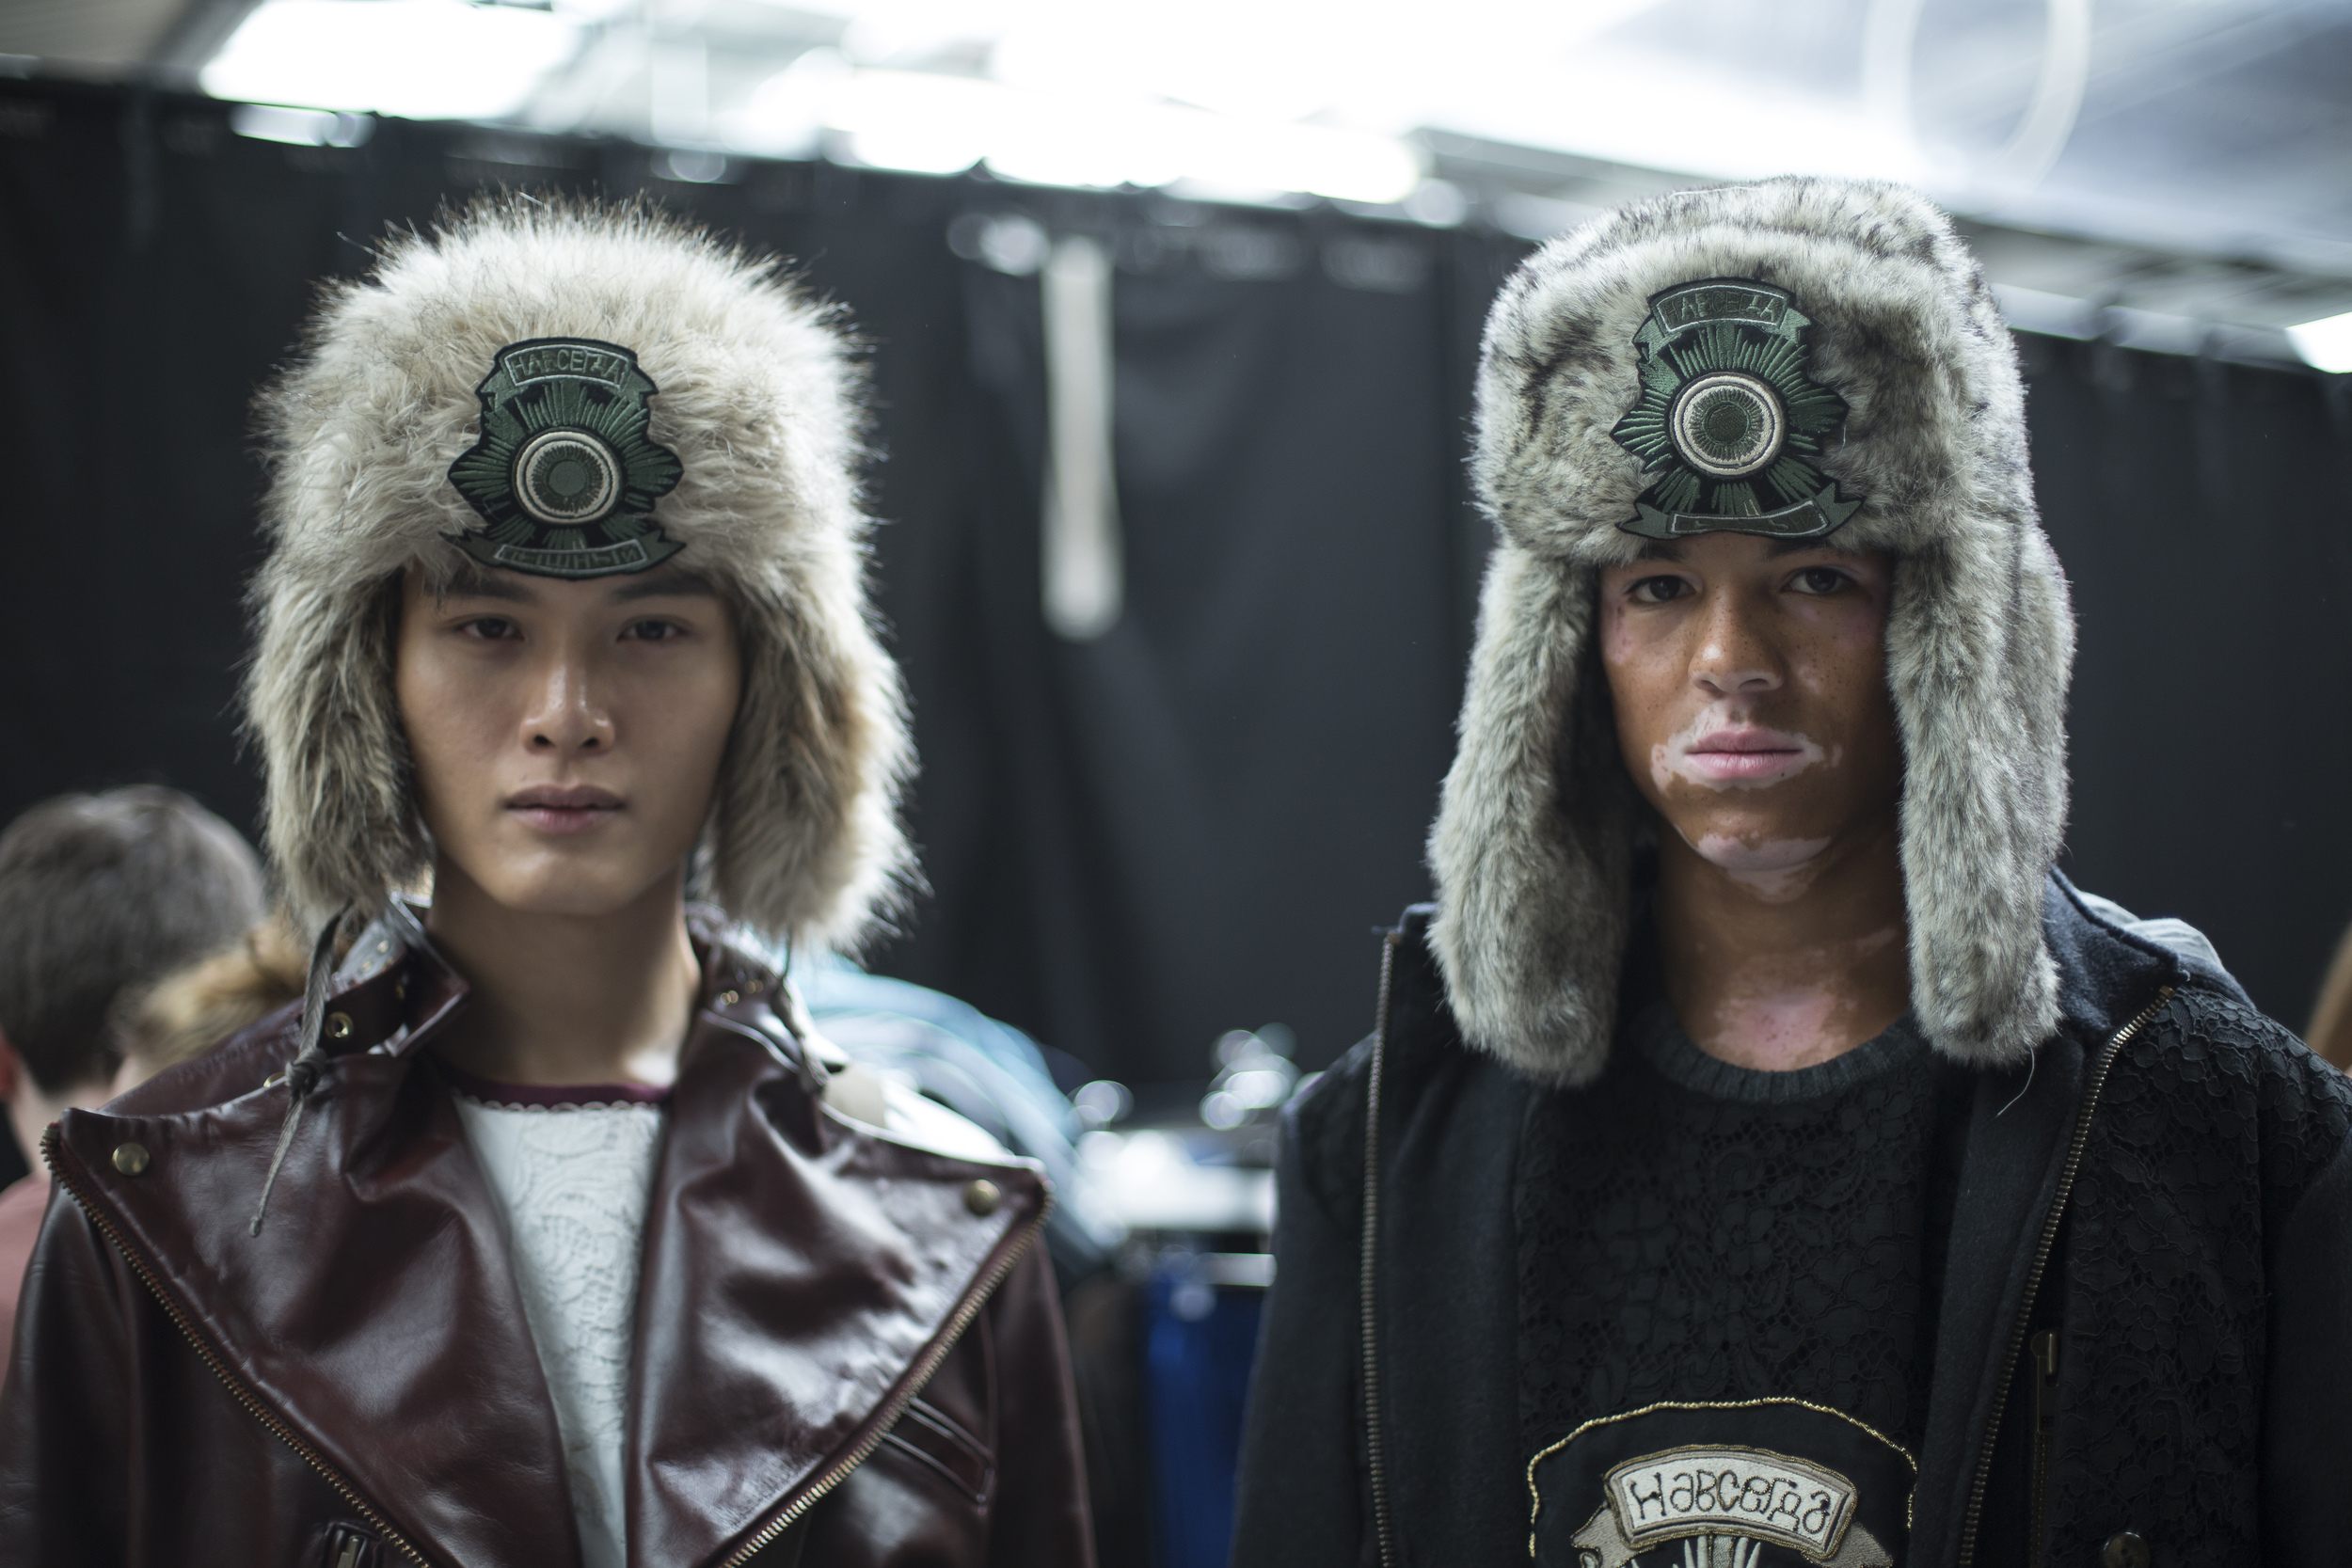 Backstage_University_Sulford_Man_GFW_LaurenMustoe_-14.jpg